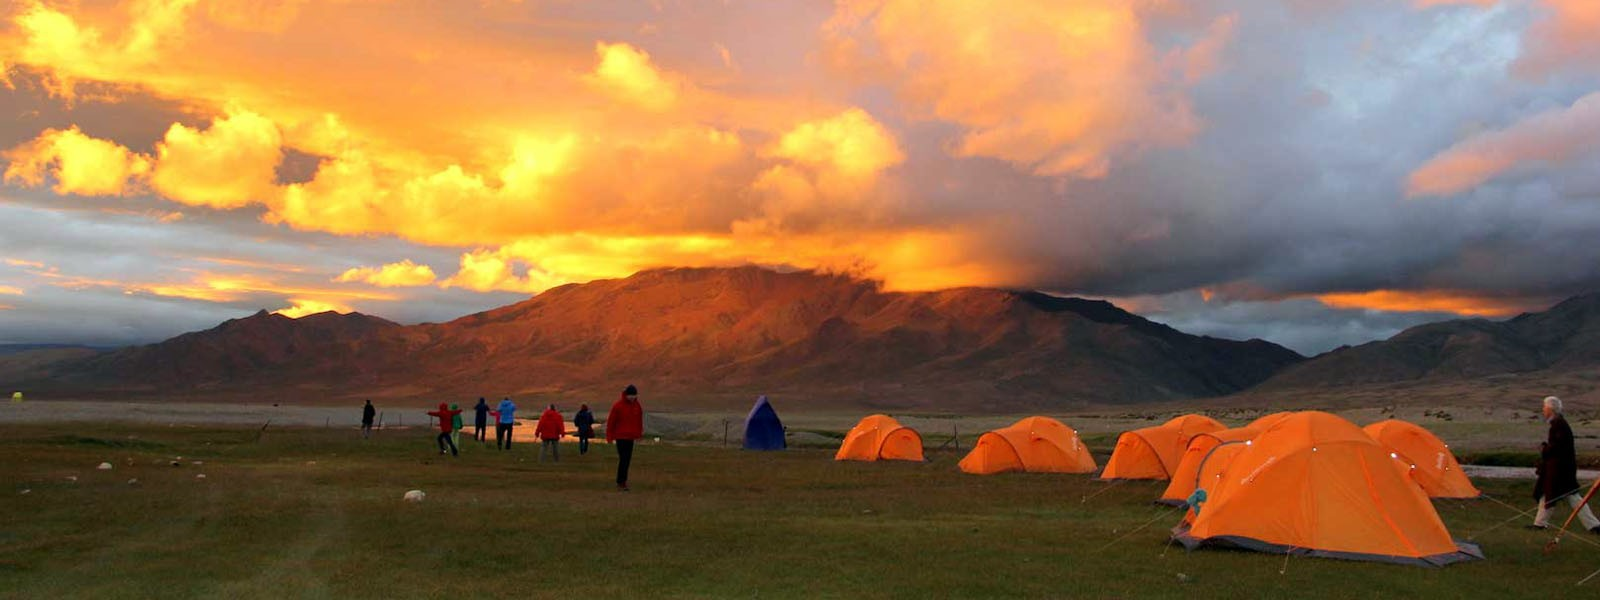 Ganden and Samye Monastery Trekking in Tibet